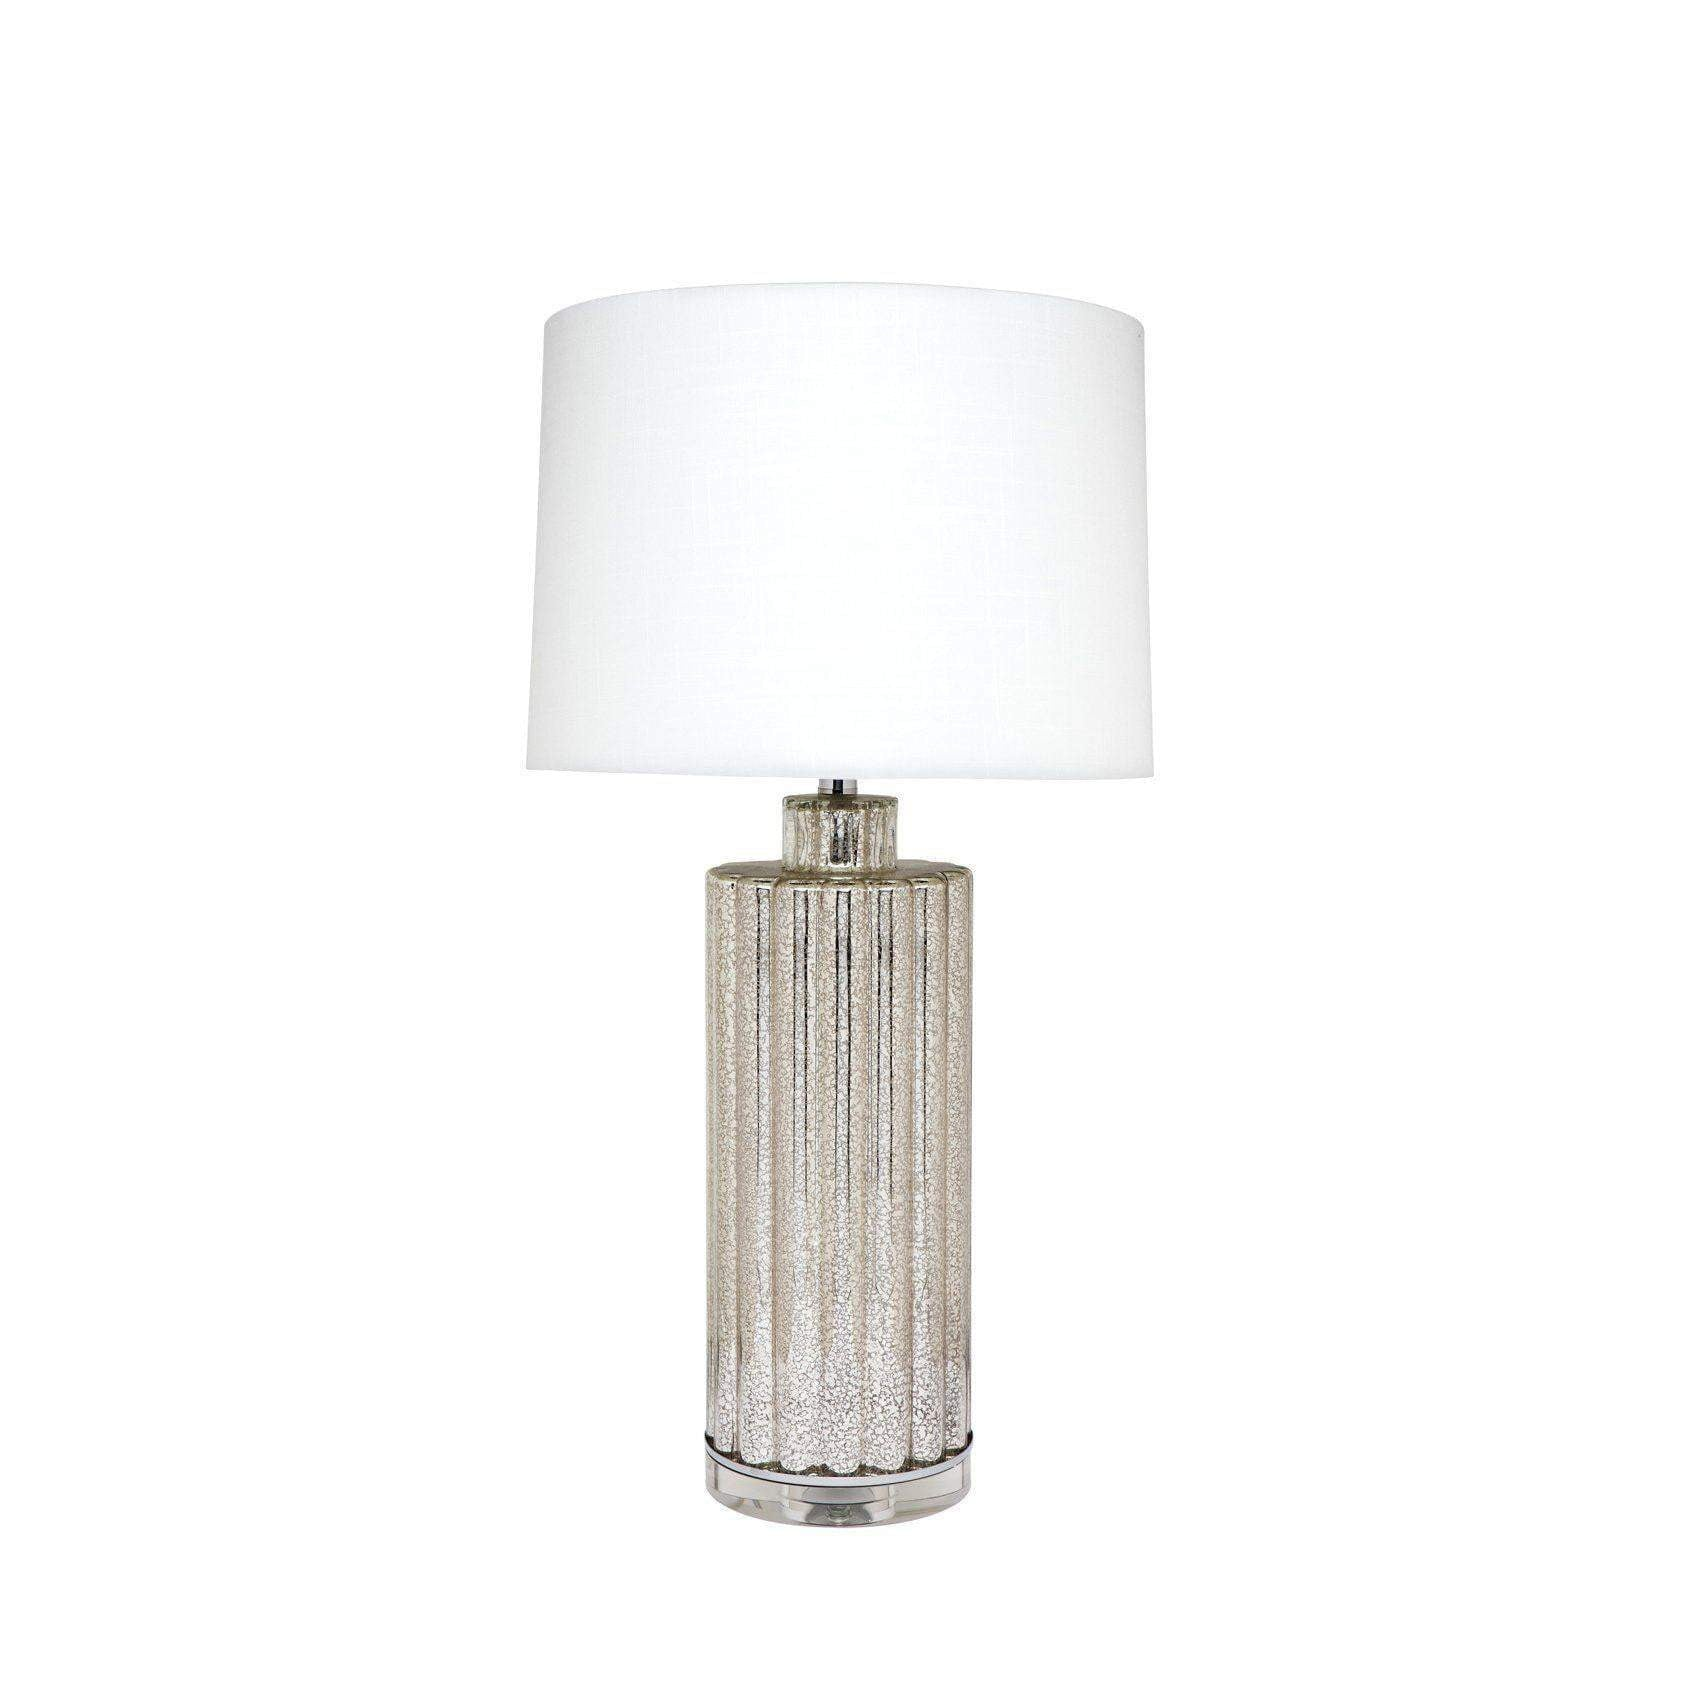 Allure Art Deco Table Lamp